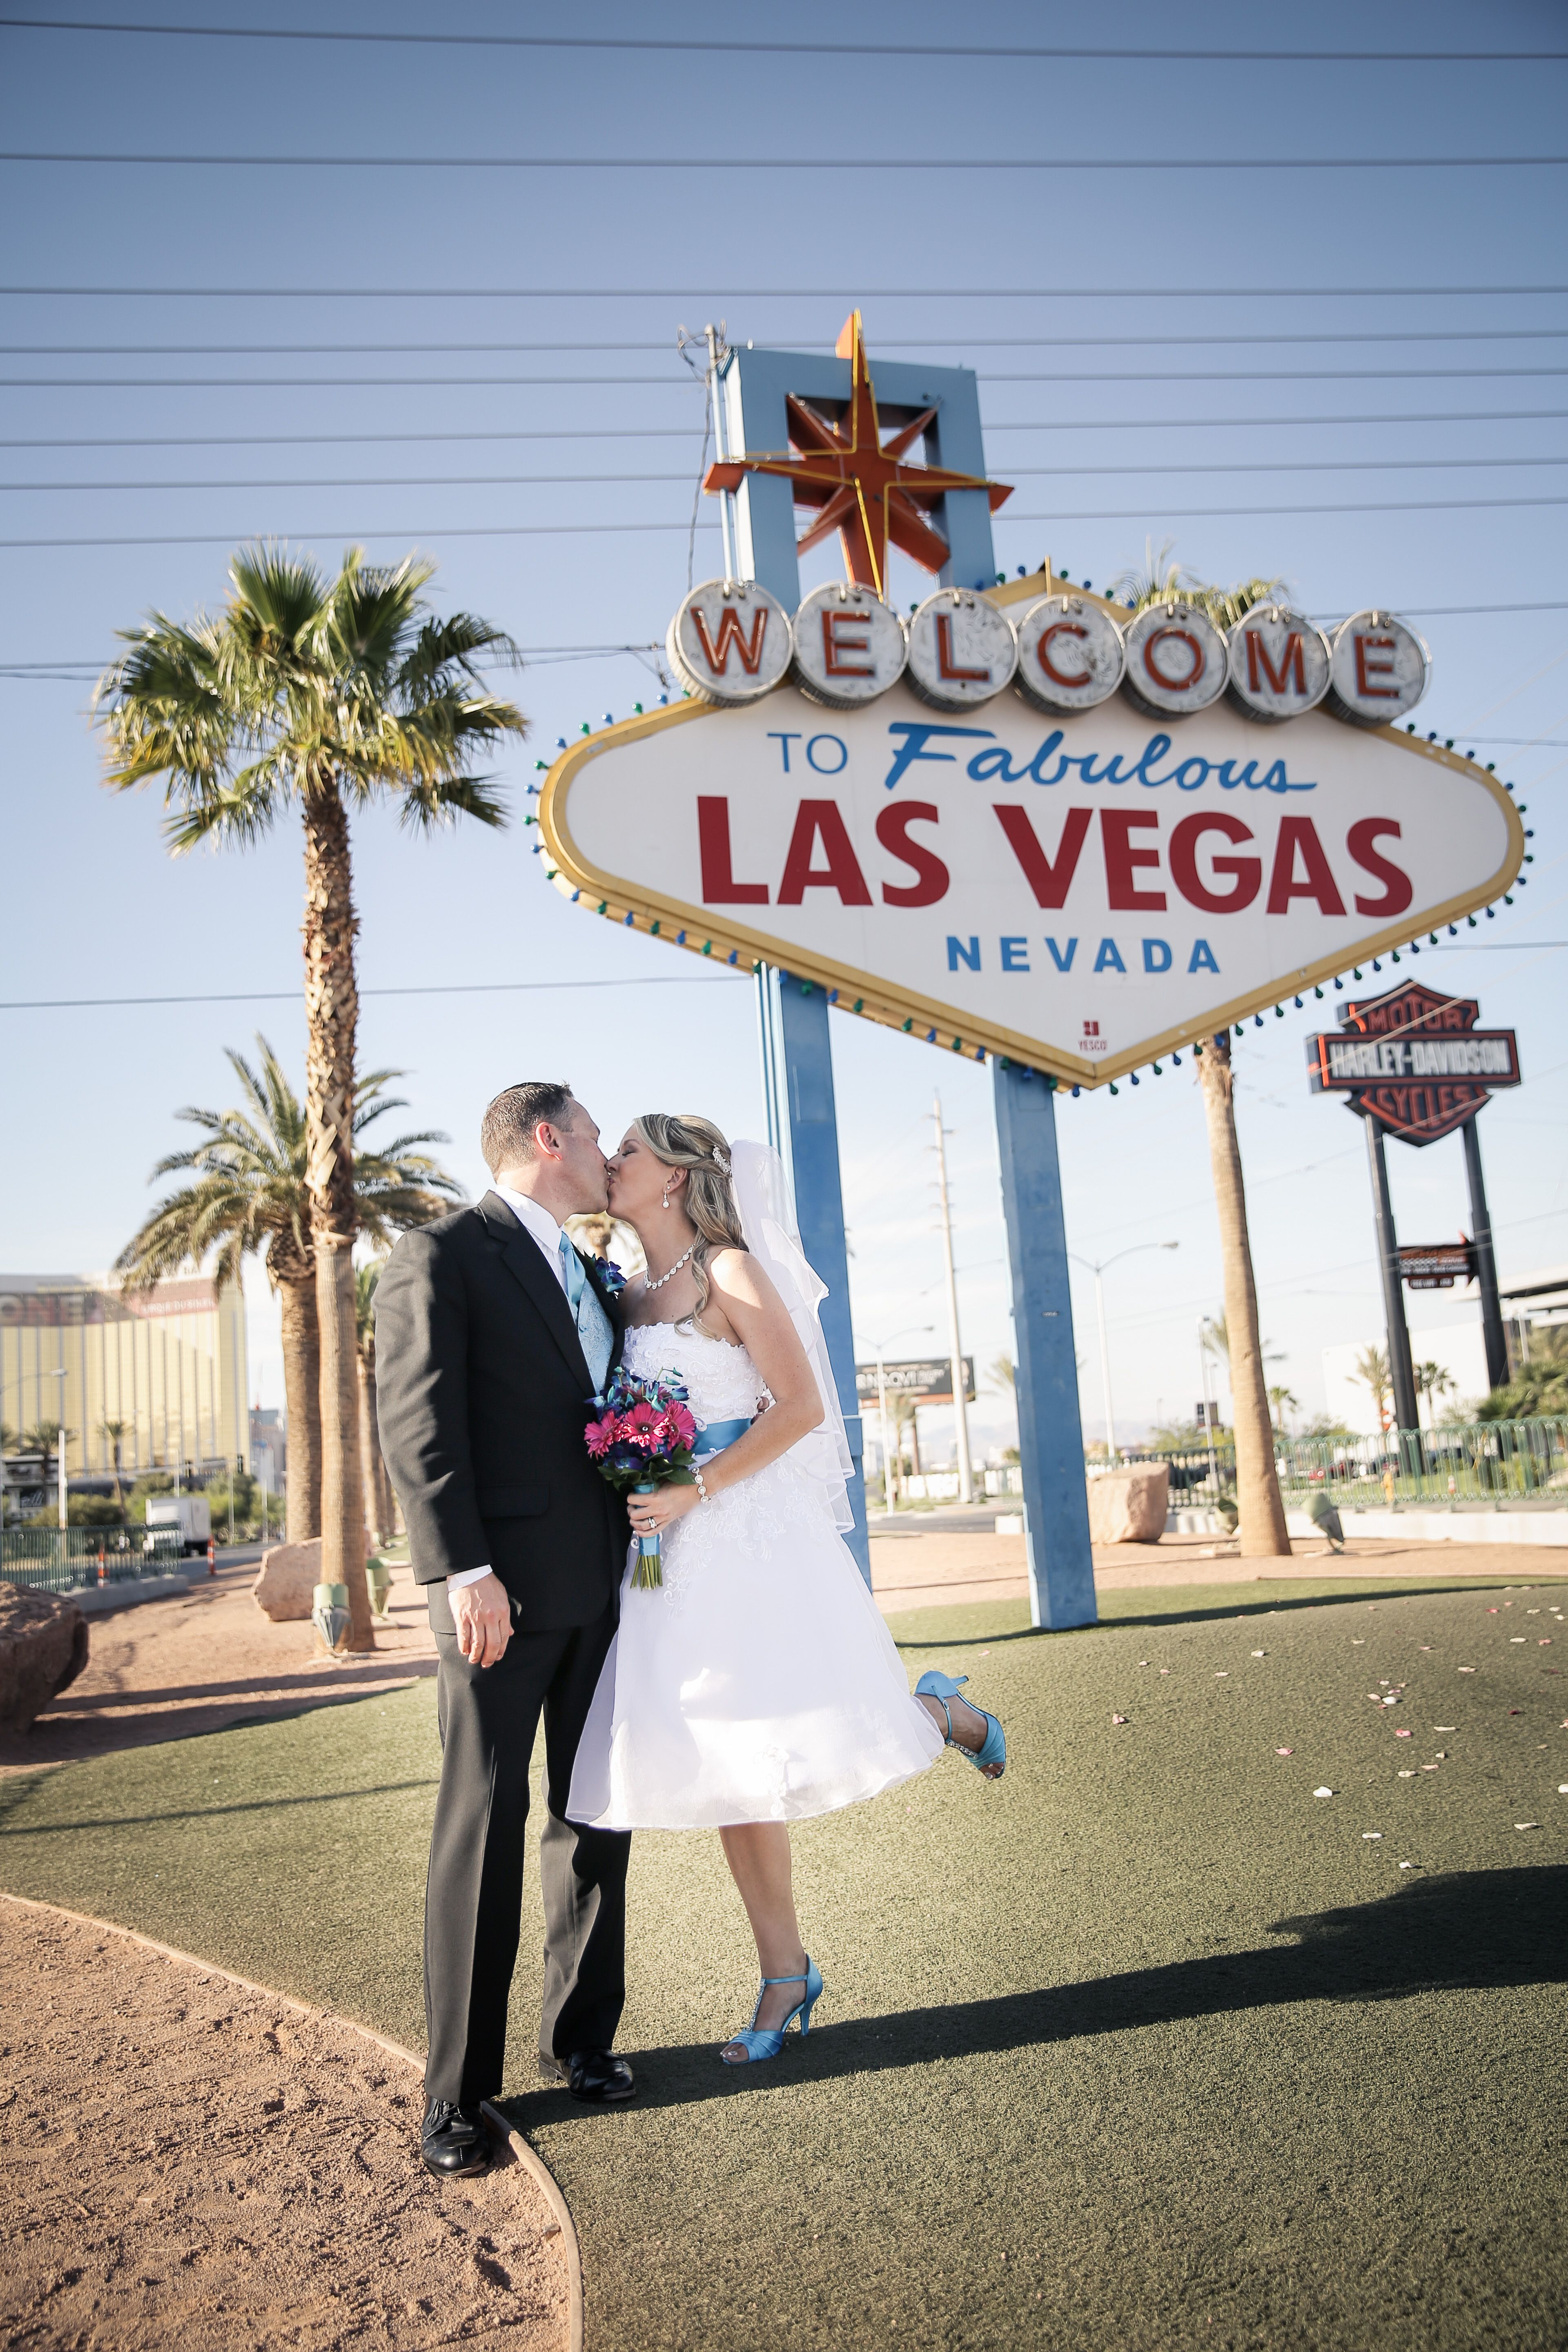 Tips For You Destination Las Vegas Wedding Affordable Packages And Insider Details To Plan A Stress Free Day